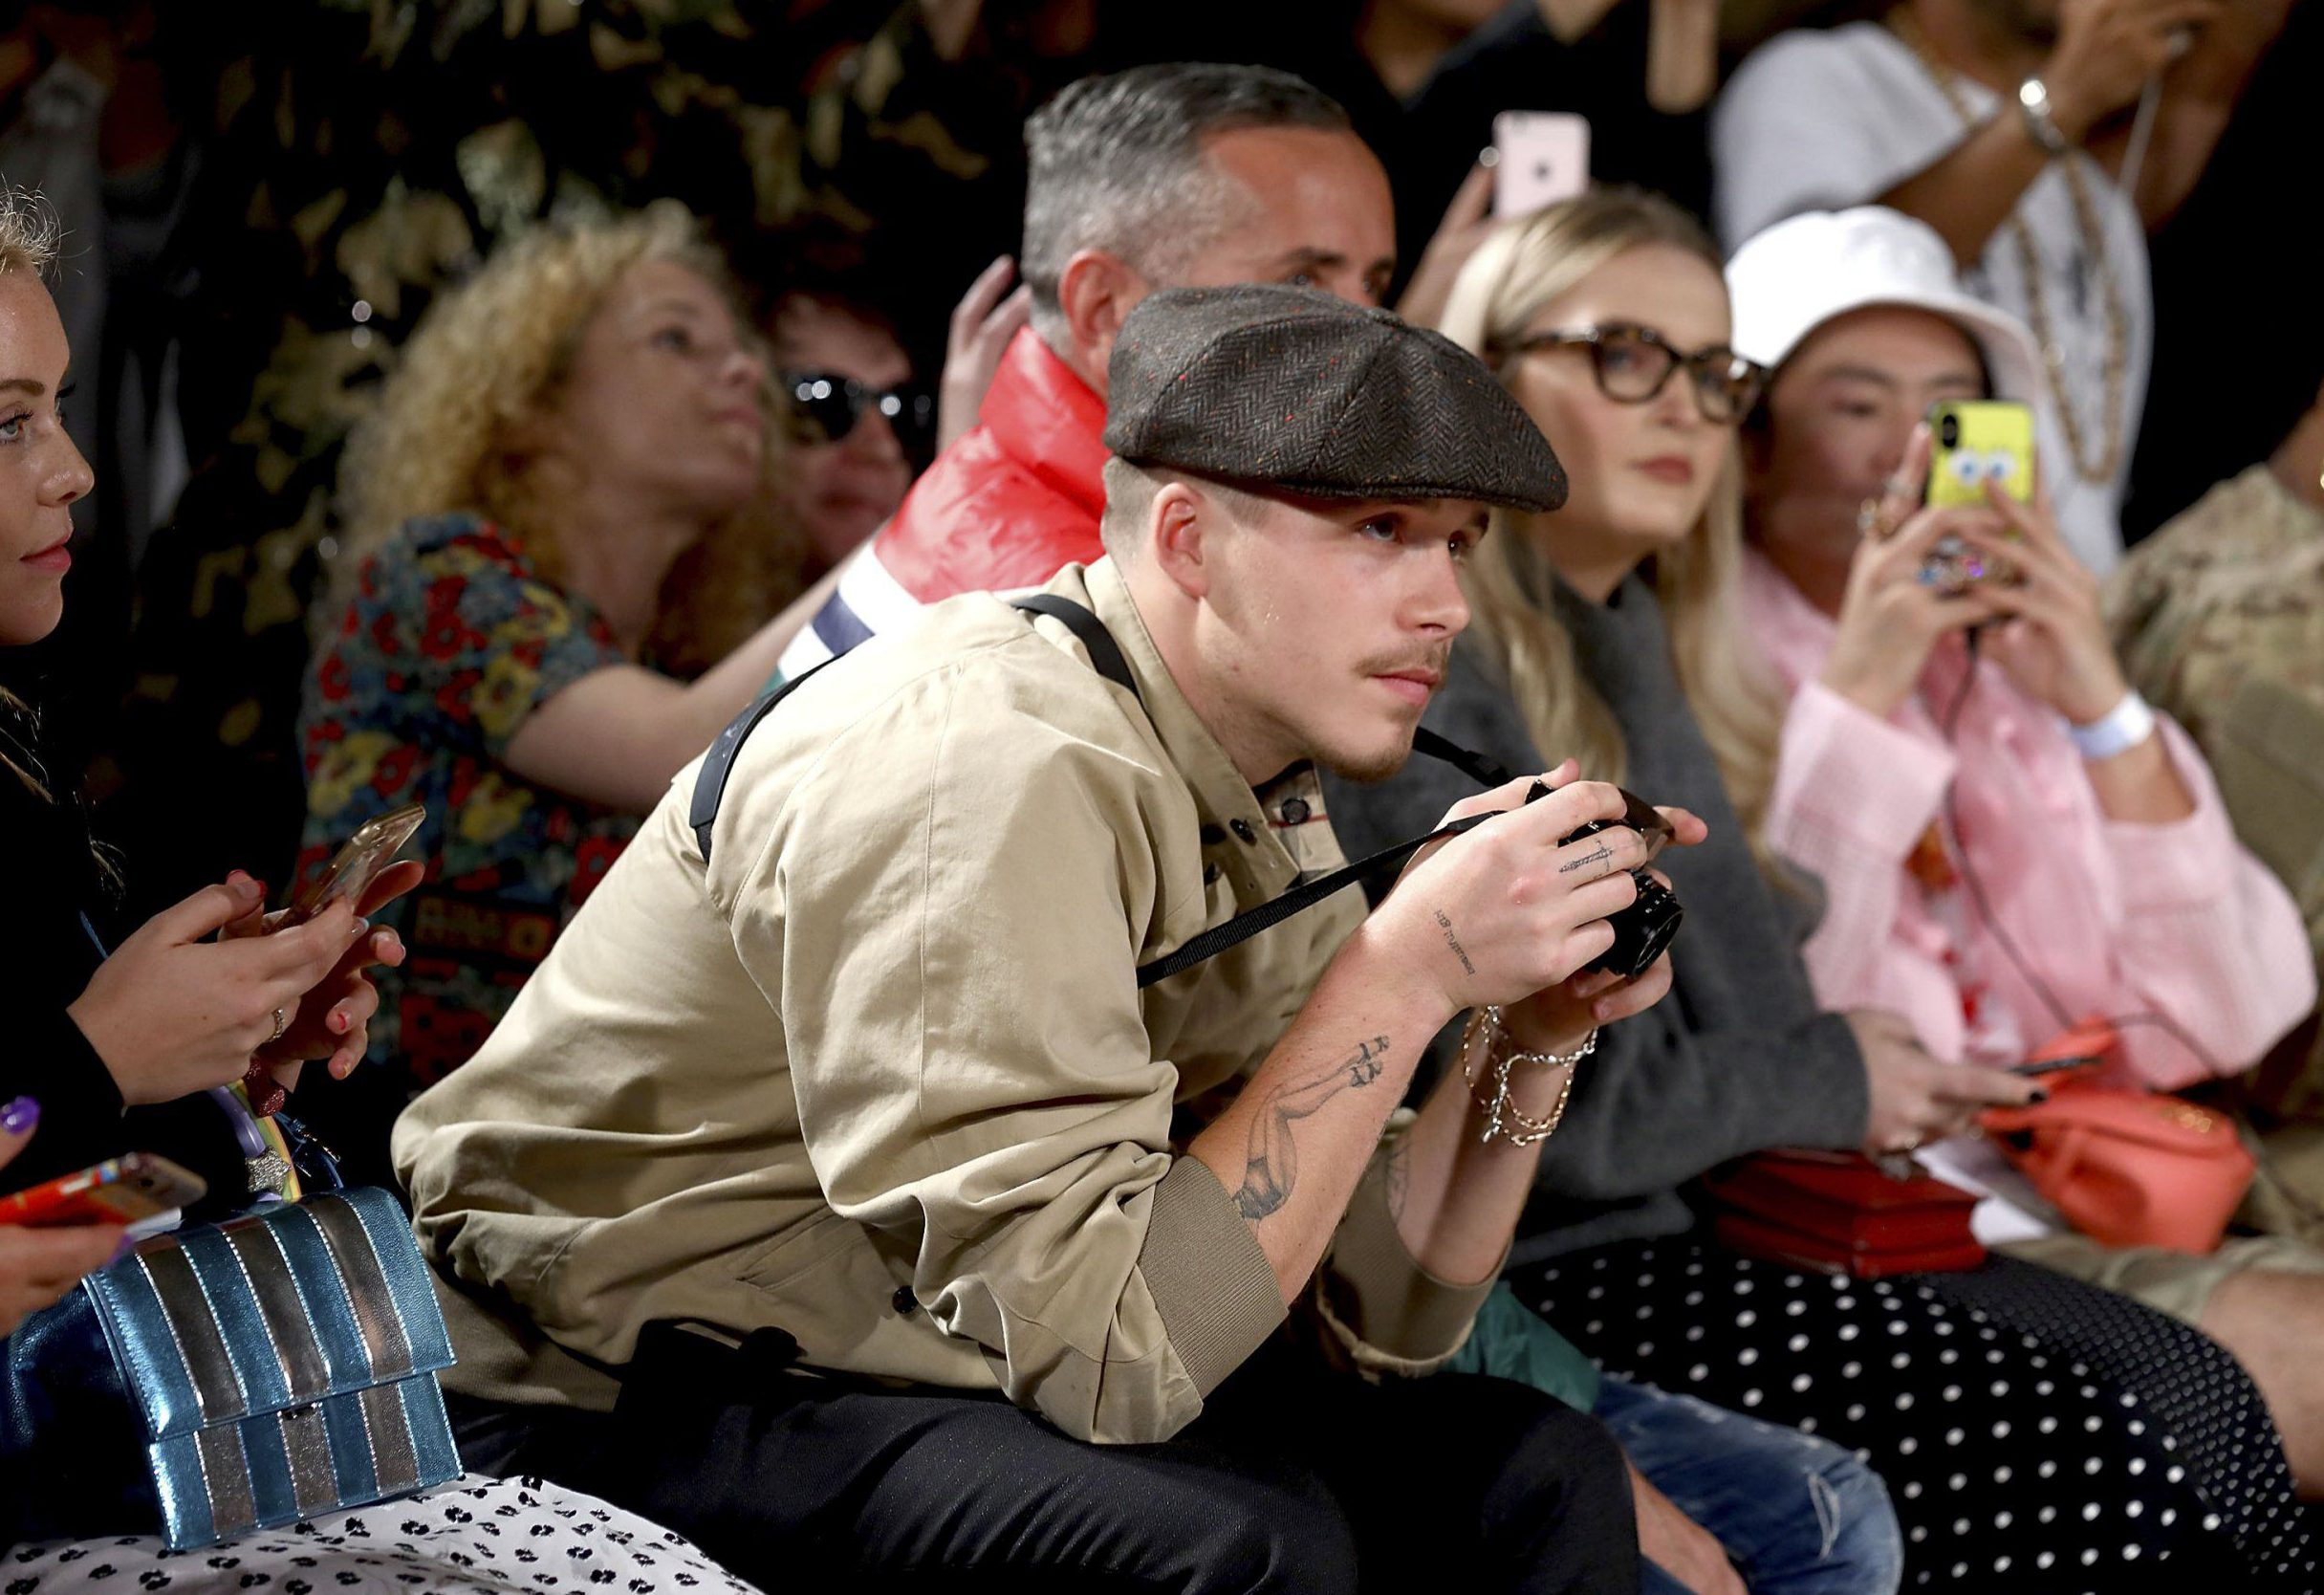 LONDON, ENGLAND - SEPTEMBER 14: Brooklyn Beckham attends the Pam Hogg Show during London Fashion Week September 2018 at Freemasons Hall on September 14, 2018 in London, England. (Photo by Tim Whitby/BFC/Getty Images)